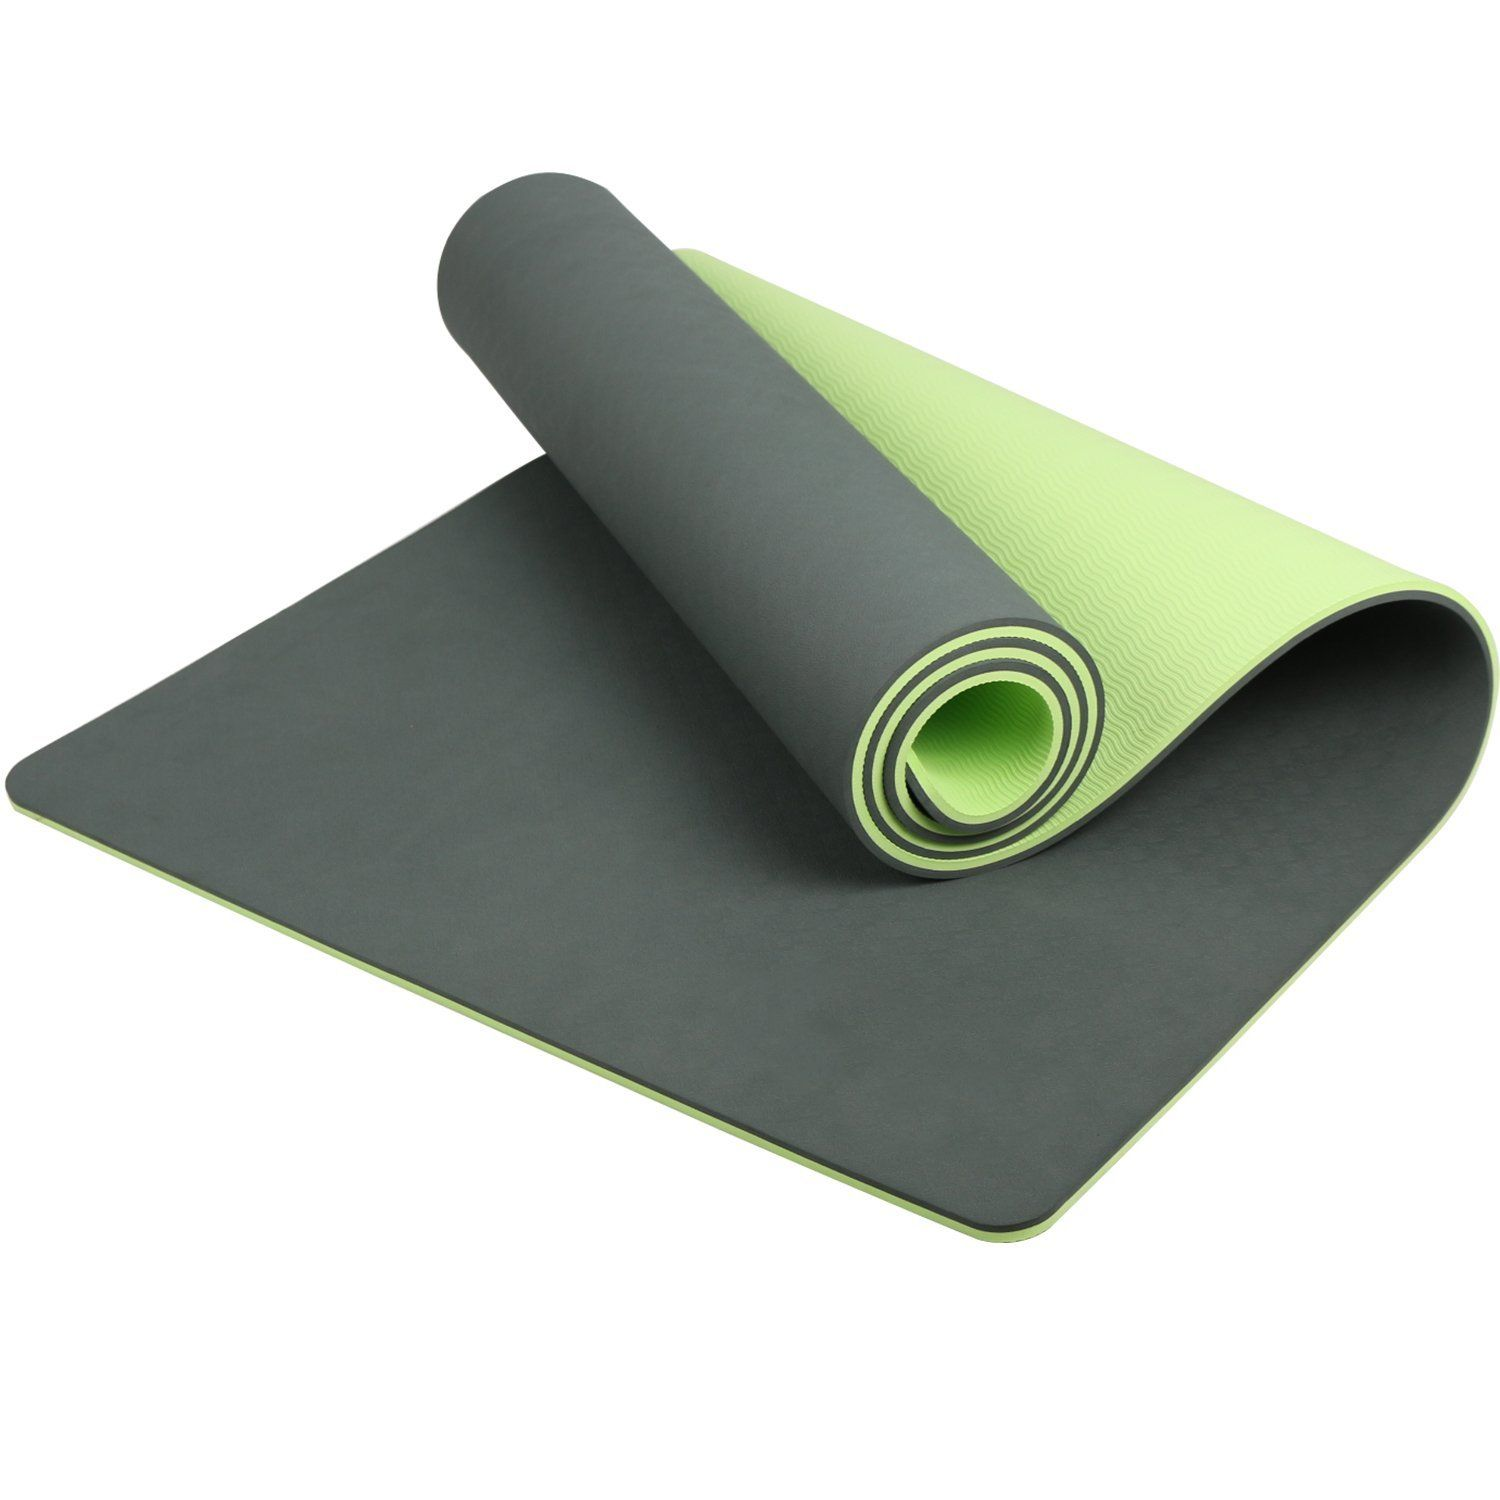 Lhotsex 1 4 Inch Exercise Yoga Mat Eco Friendly Non Slip Exercise Yoga Mat For Pilates Fitness And Workout See This Mat Exercises Pilates Workout Yoga Mat